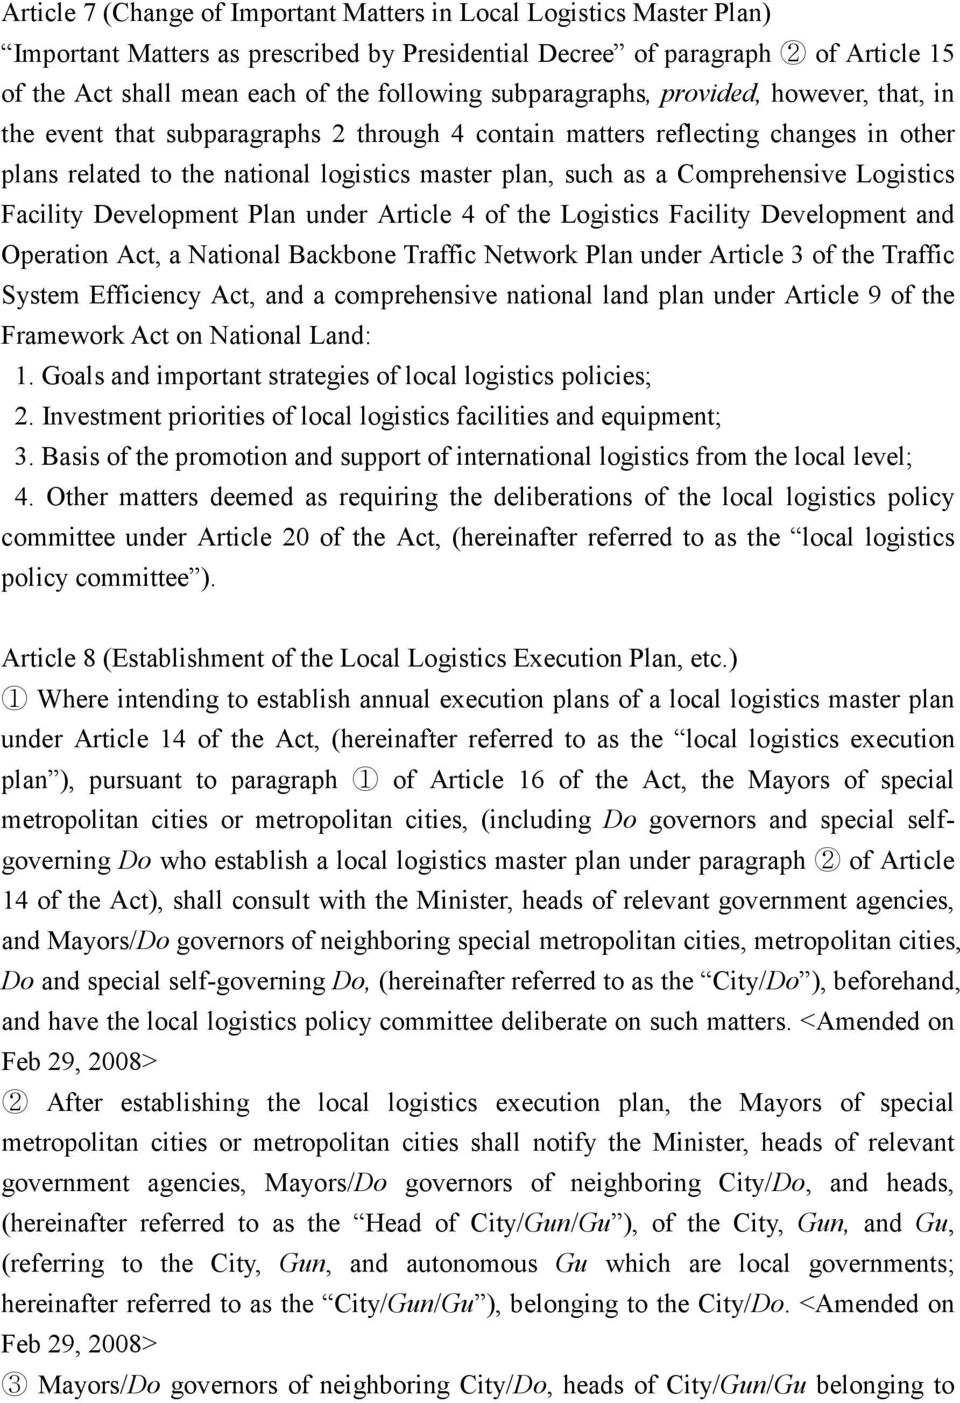 Comprehensive Logistics Facility Development Plan under Article 4 of the Logistics Facility Development and Operation Act, a National Backbone Traffic Network Plan under Article 3 of the Traffic